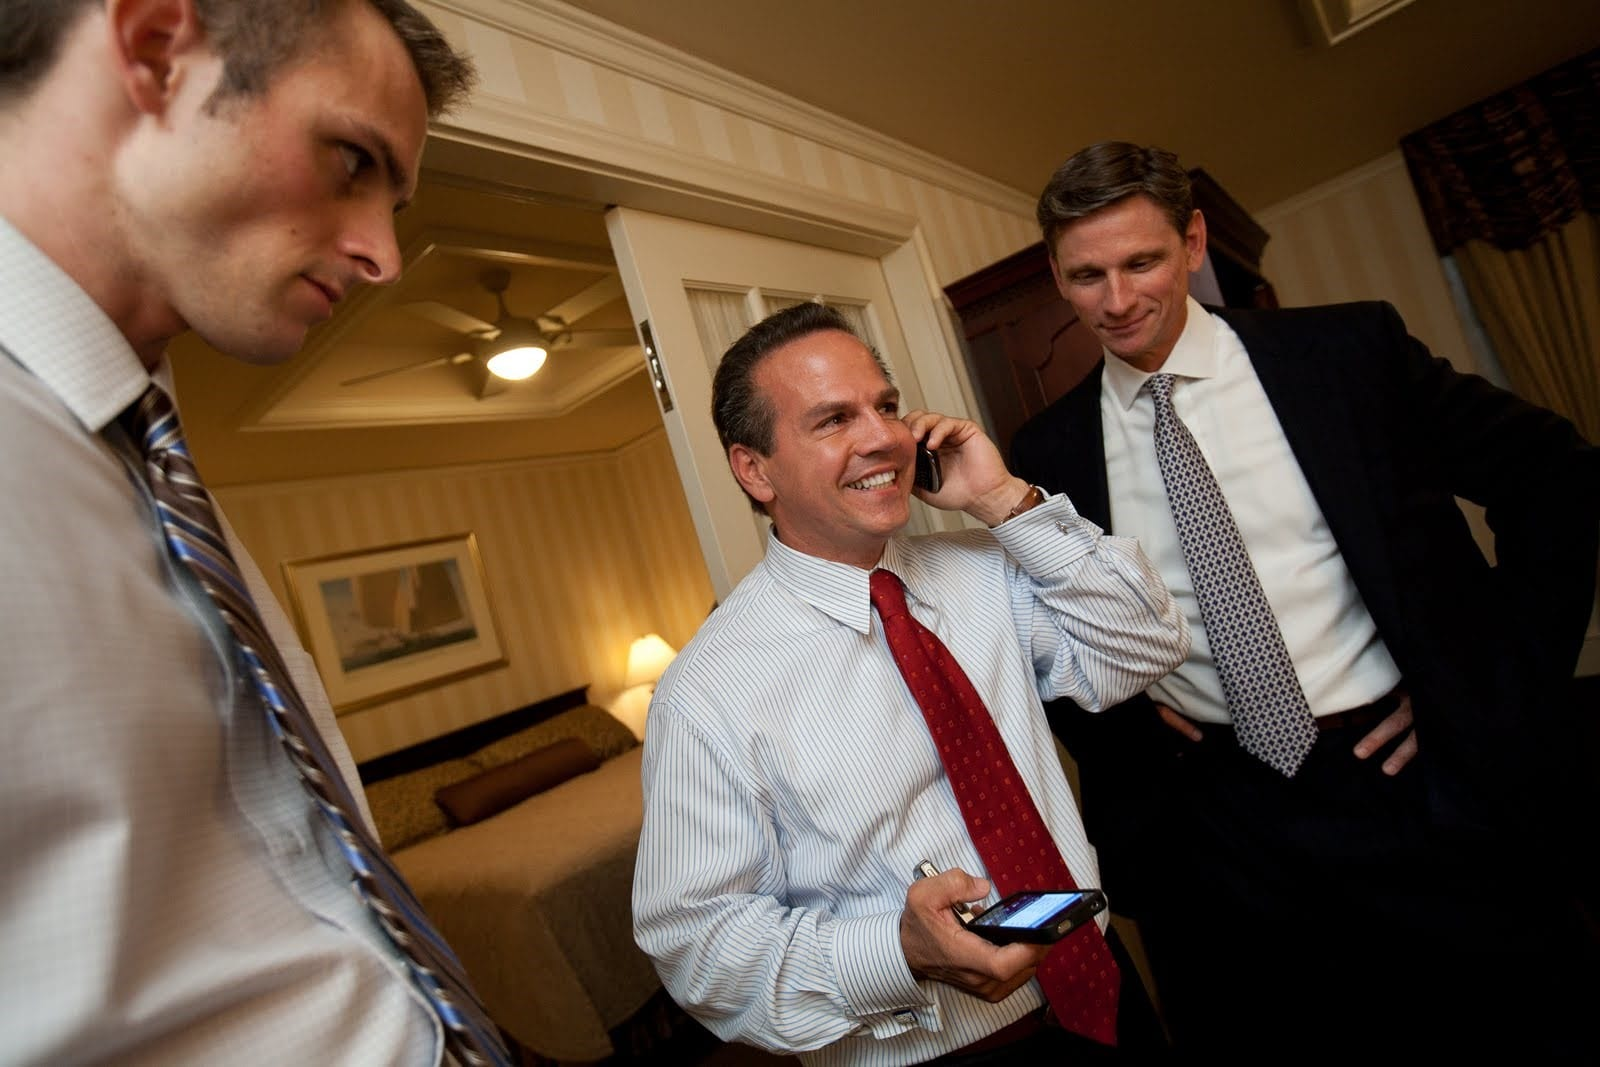 Victory Fund's Chuck Wolfe with David Cicilline shortly after winning his race for U.S. Congress.